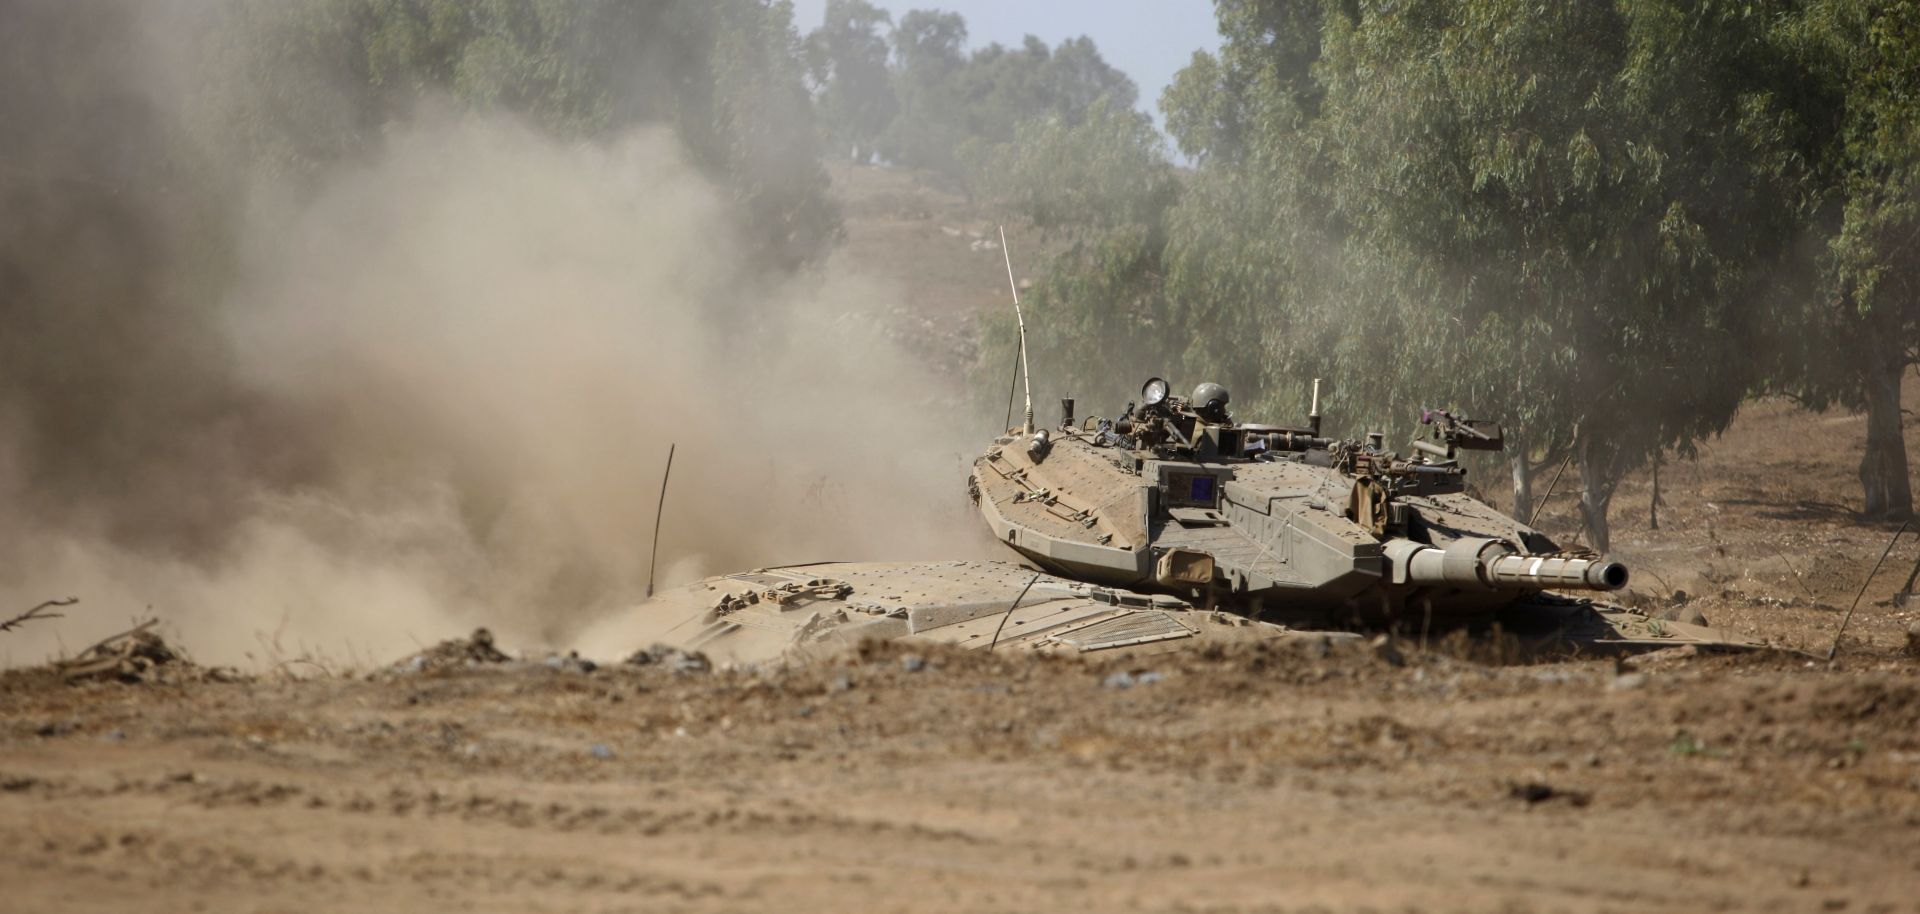 An Israeli army tank maneuvers during Israel's largest military exercise since 1998. The exercise focuses on preparing for a potential war with Hezbollah along Israel's northern border.